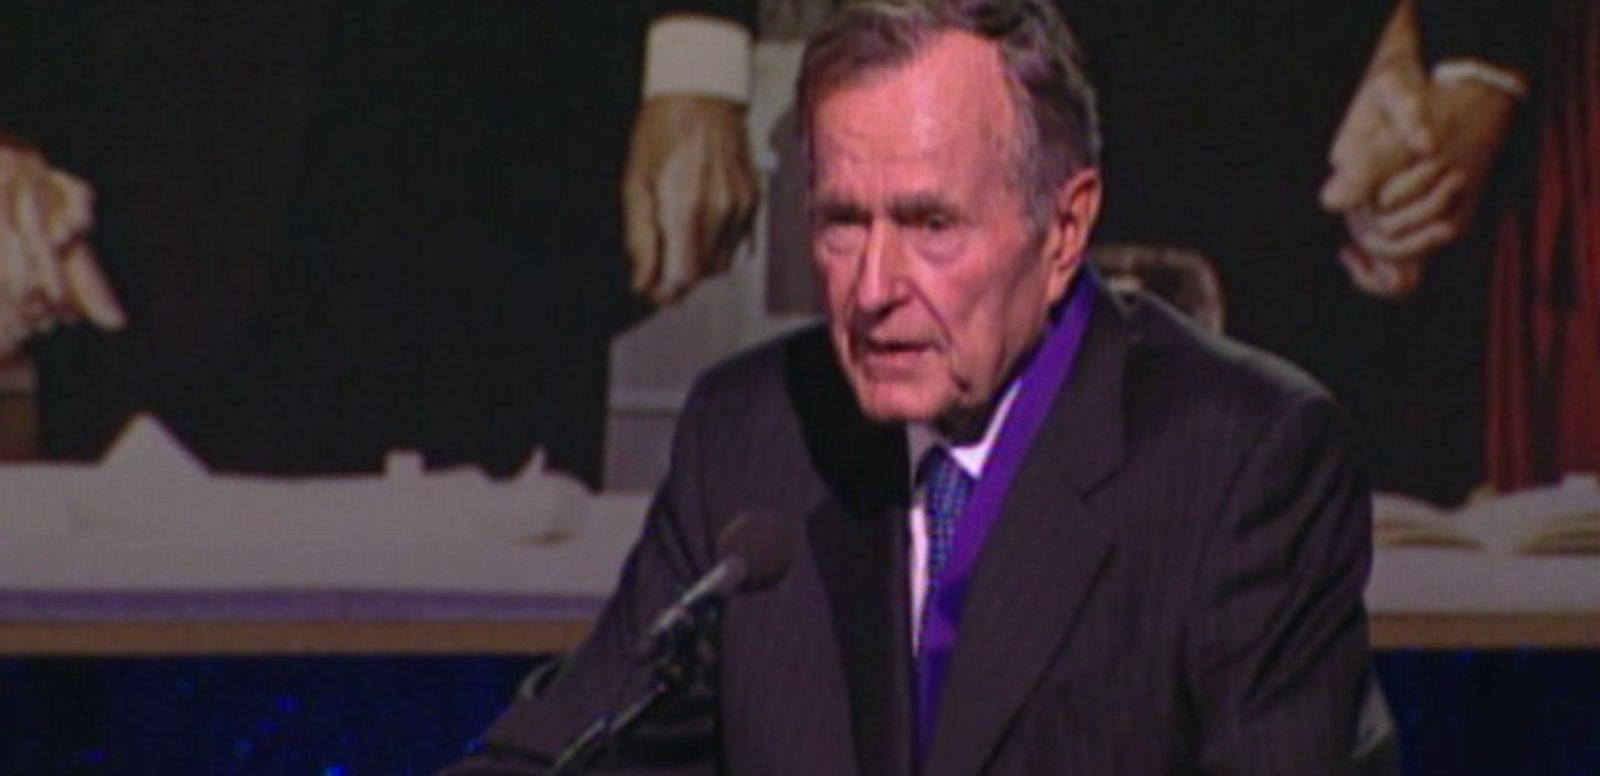 VIDEO: Shortness of breath being monitored, Bush spending Christmas Eve in hospital.